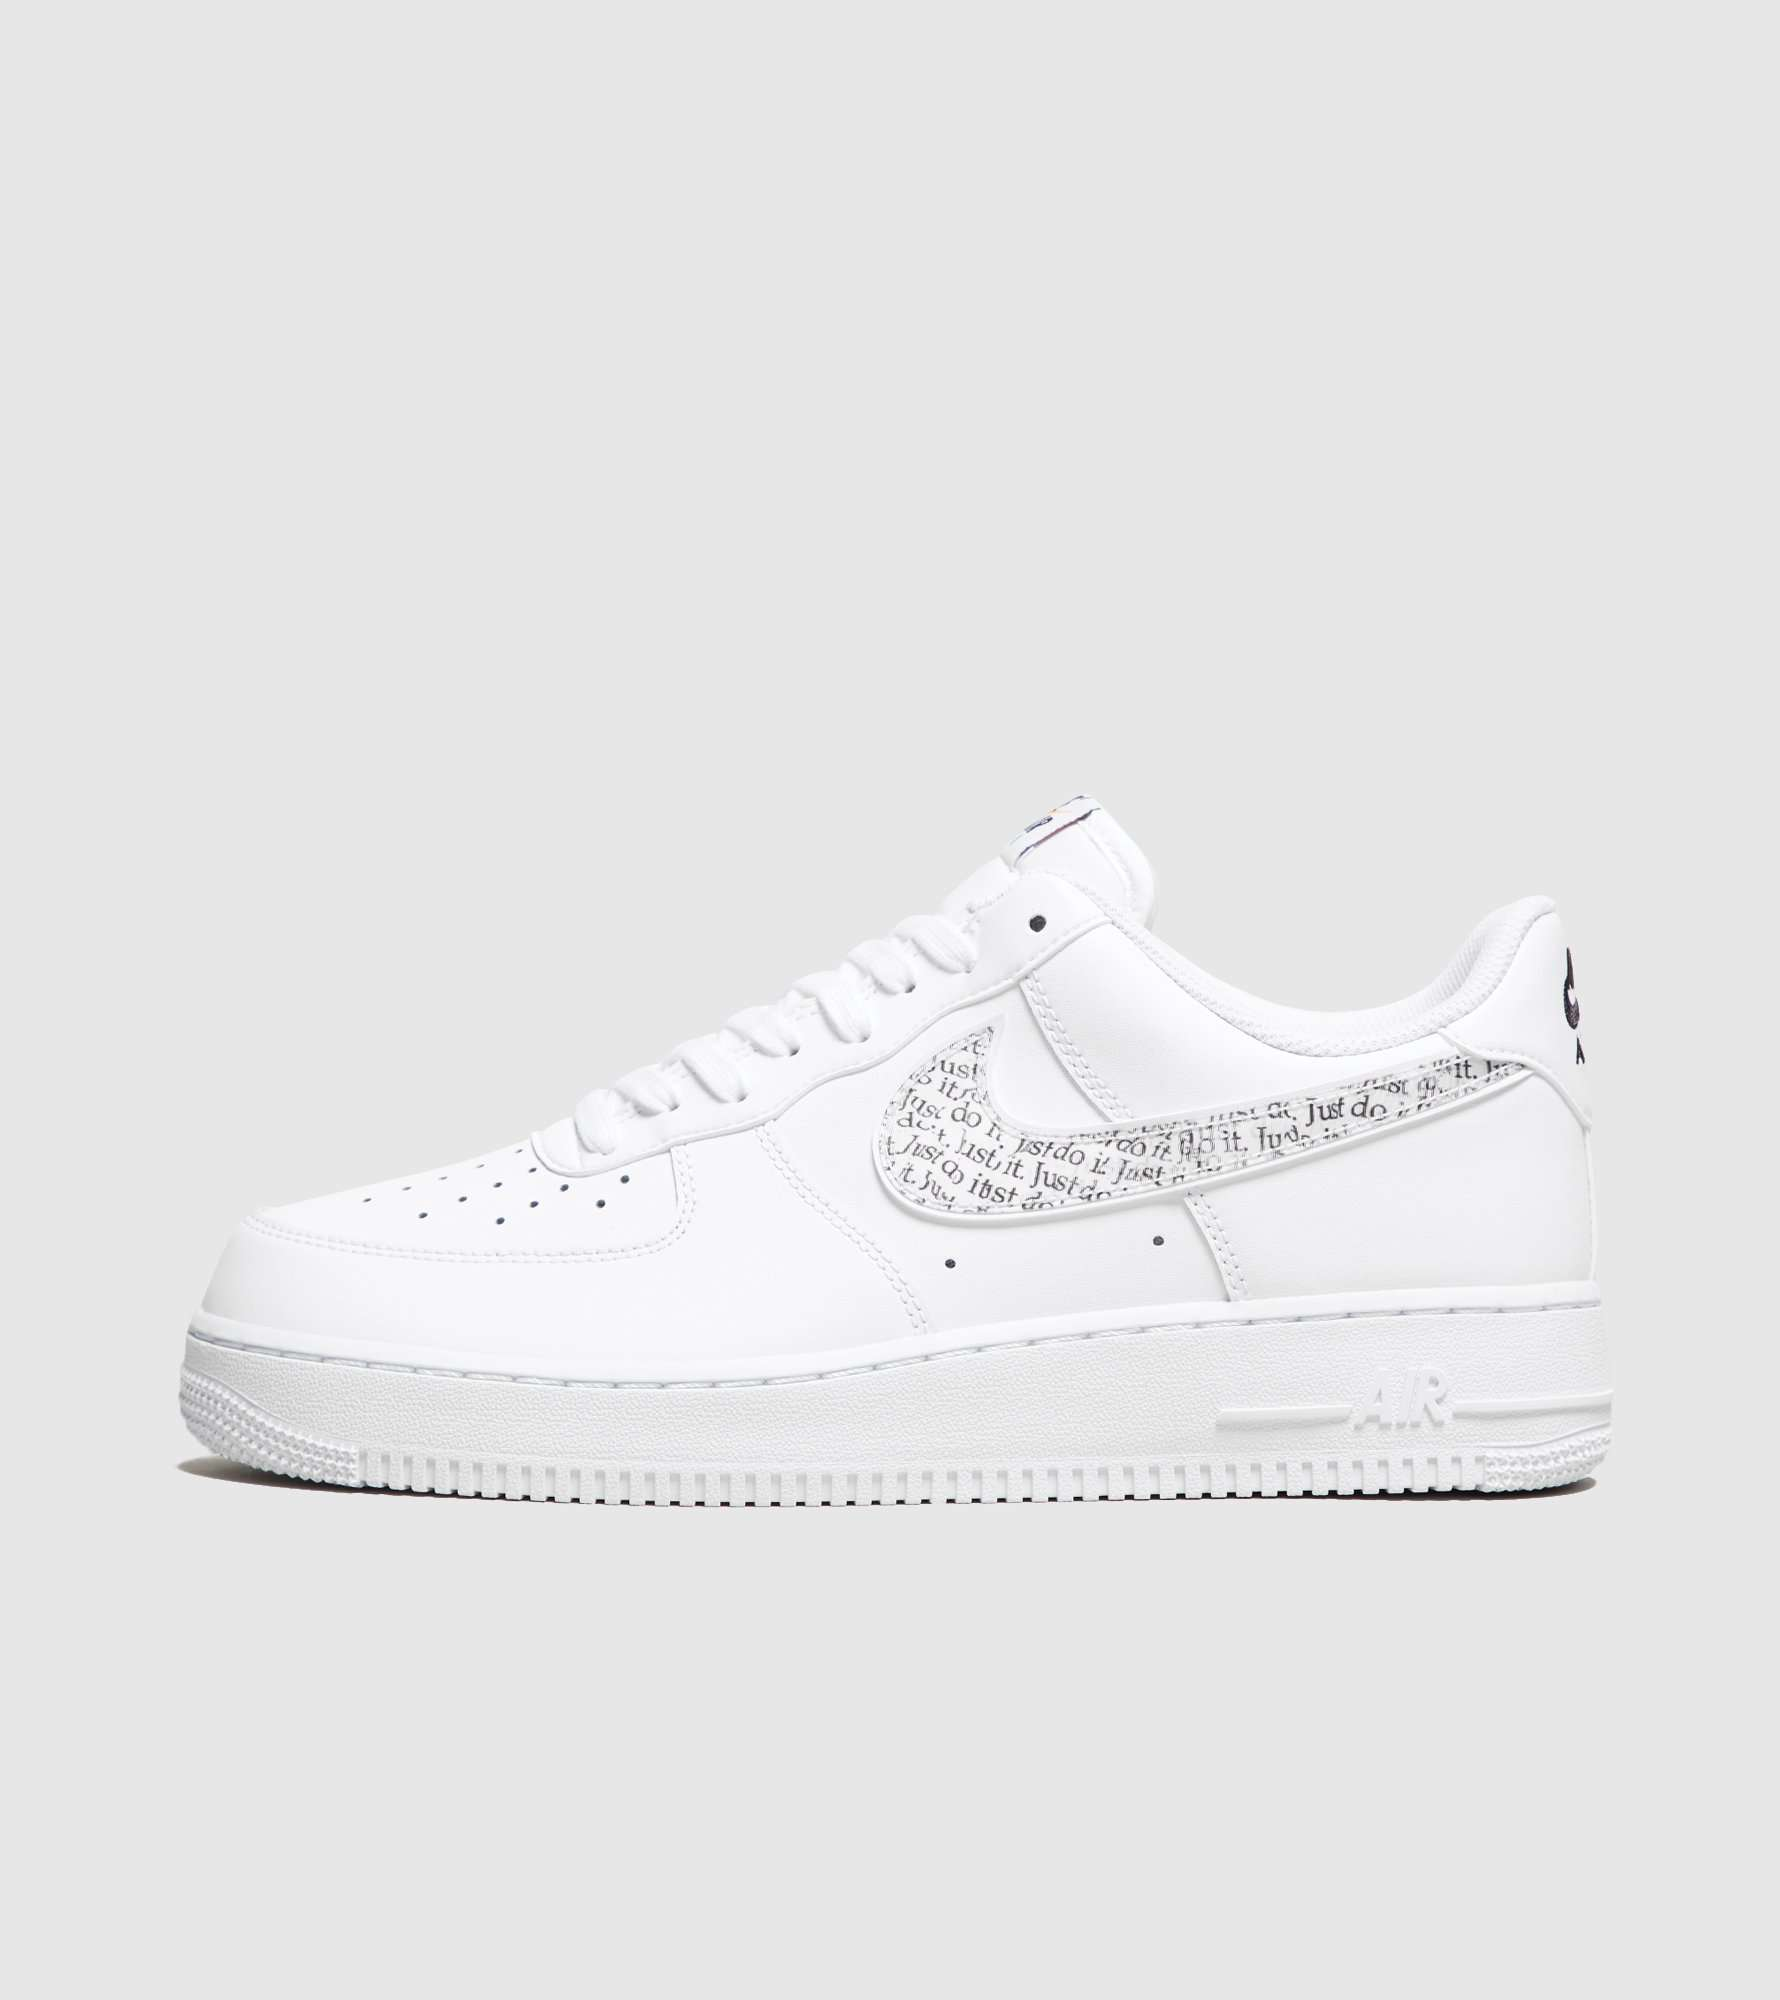 Nike Air Force 1 Low 'Just Do It'